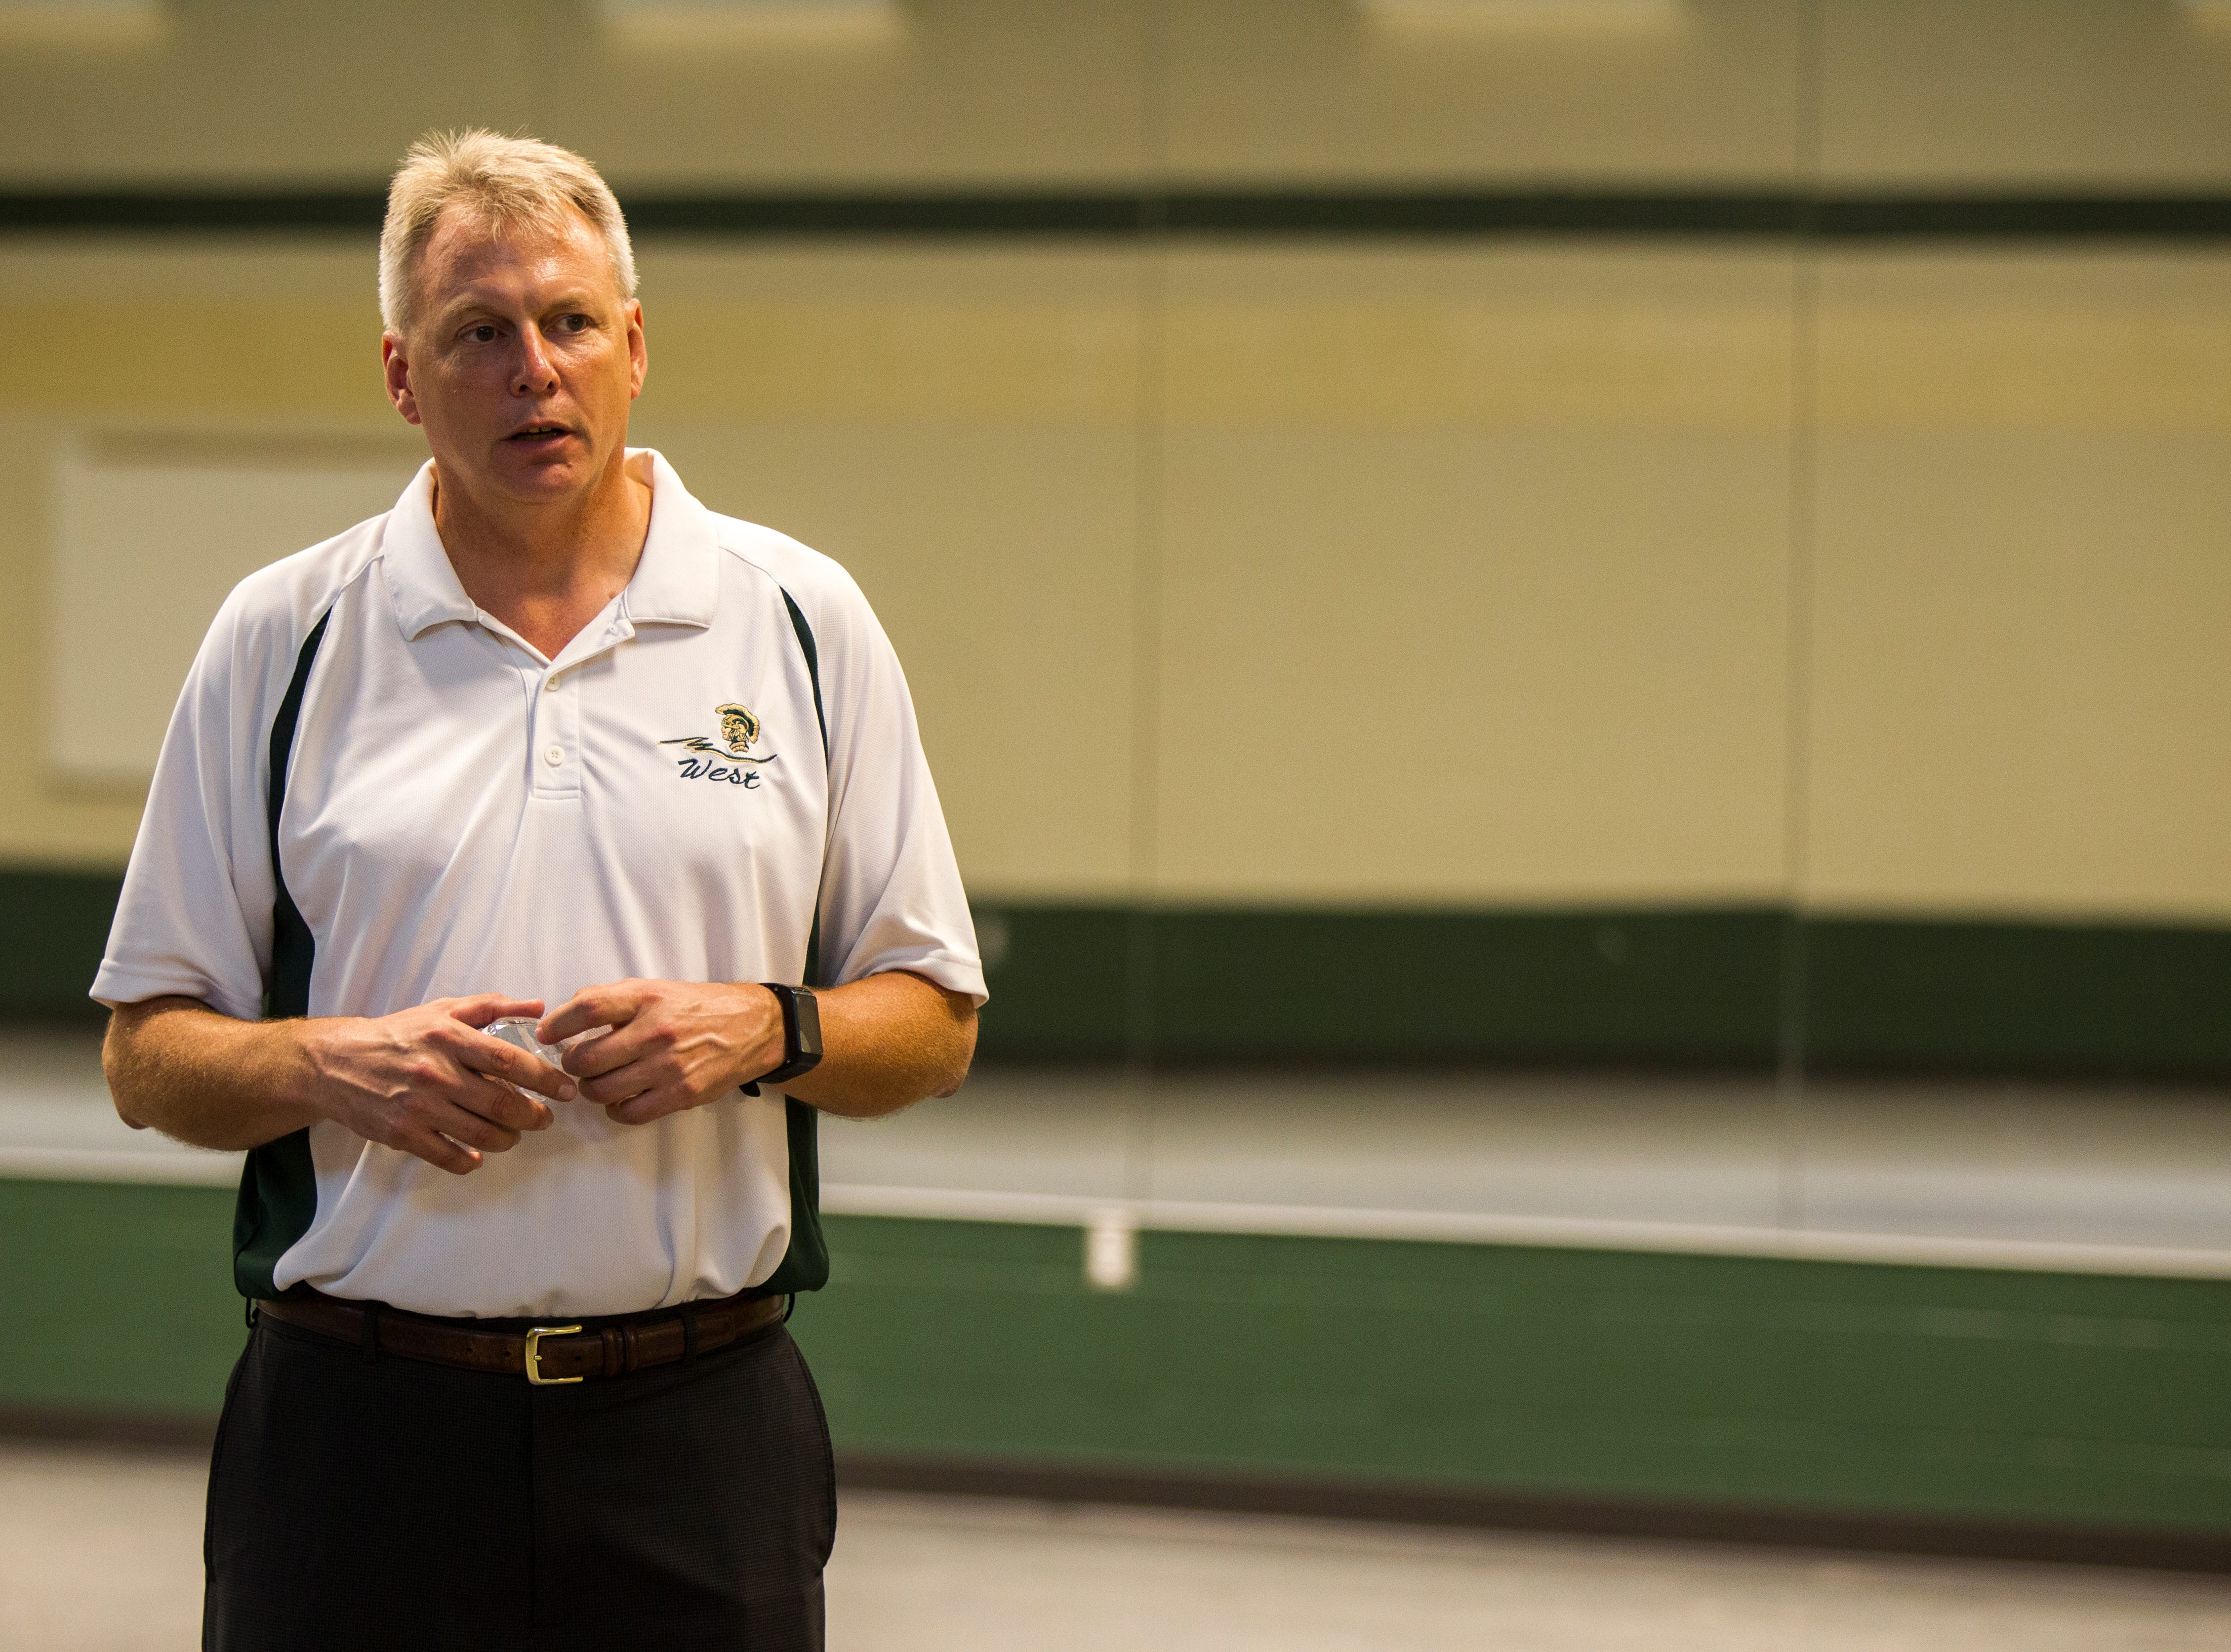 Gregg Shoultz, West High principal, speaks in a weight room during a tour of a recently completed addition to facilities on Wednesday, Aug. 15, 2018, at West High School in Iowa City. The addition was the first phase of renovations set to take place for the building that opened in 1968.